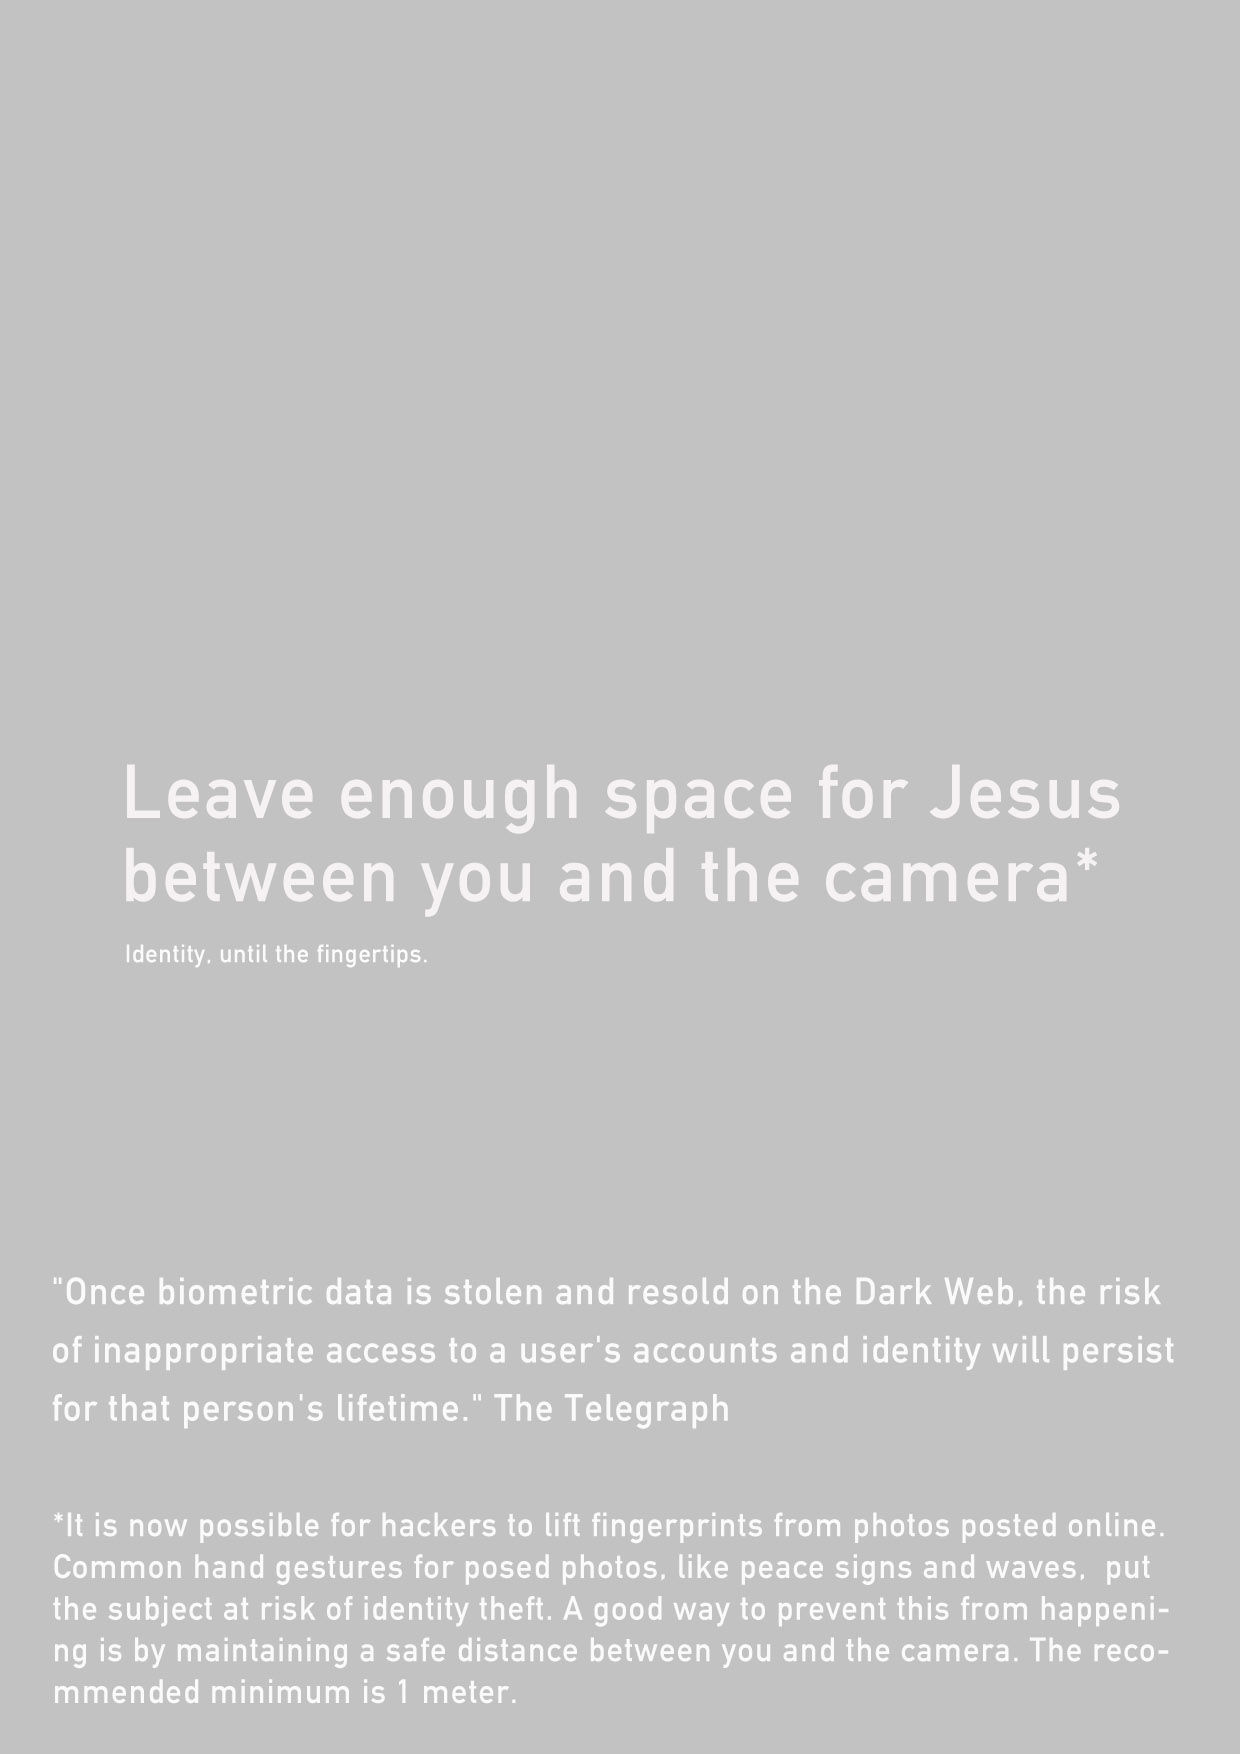 Leave enough space for jesus between you and the camera